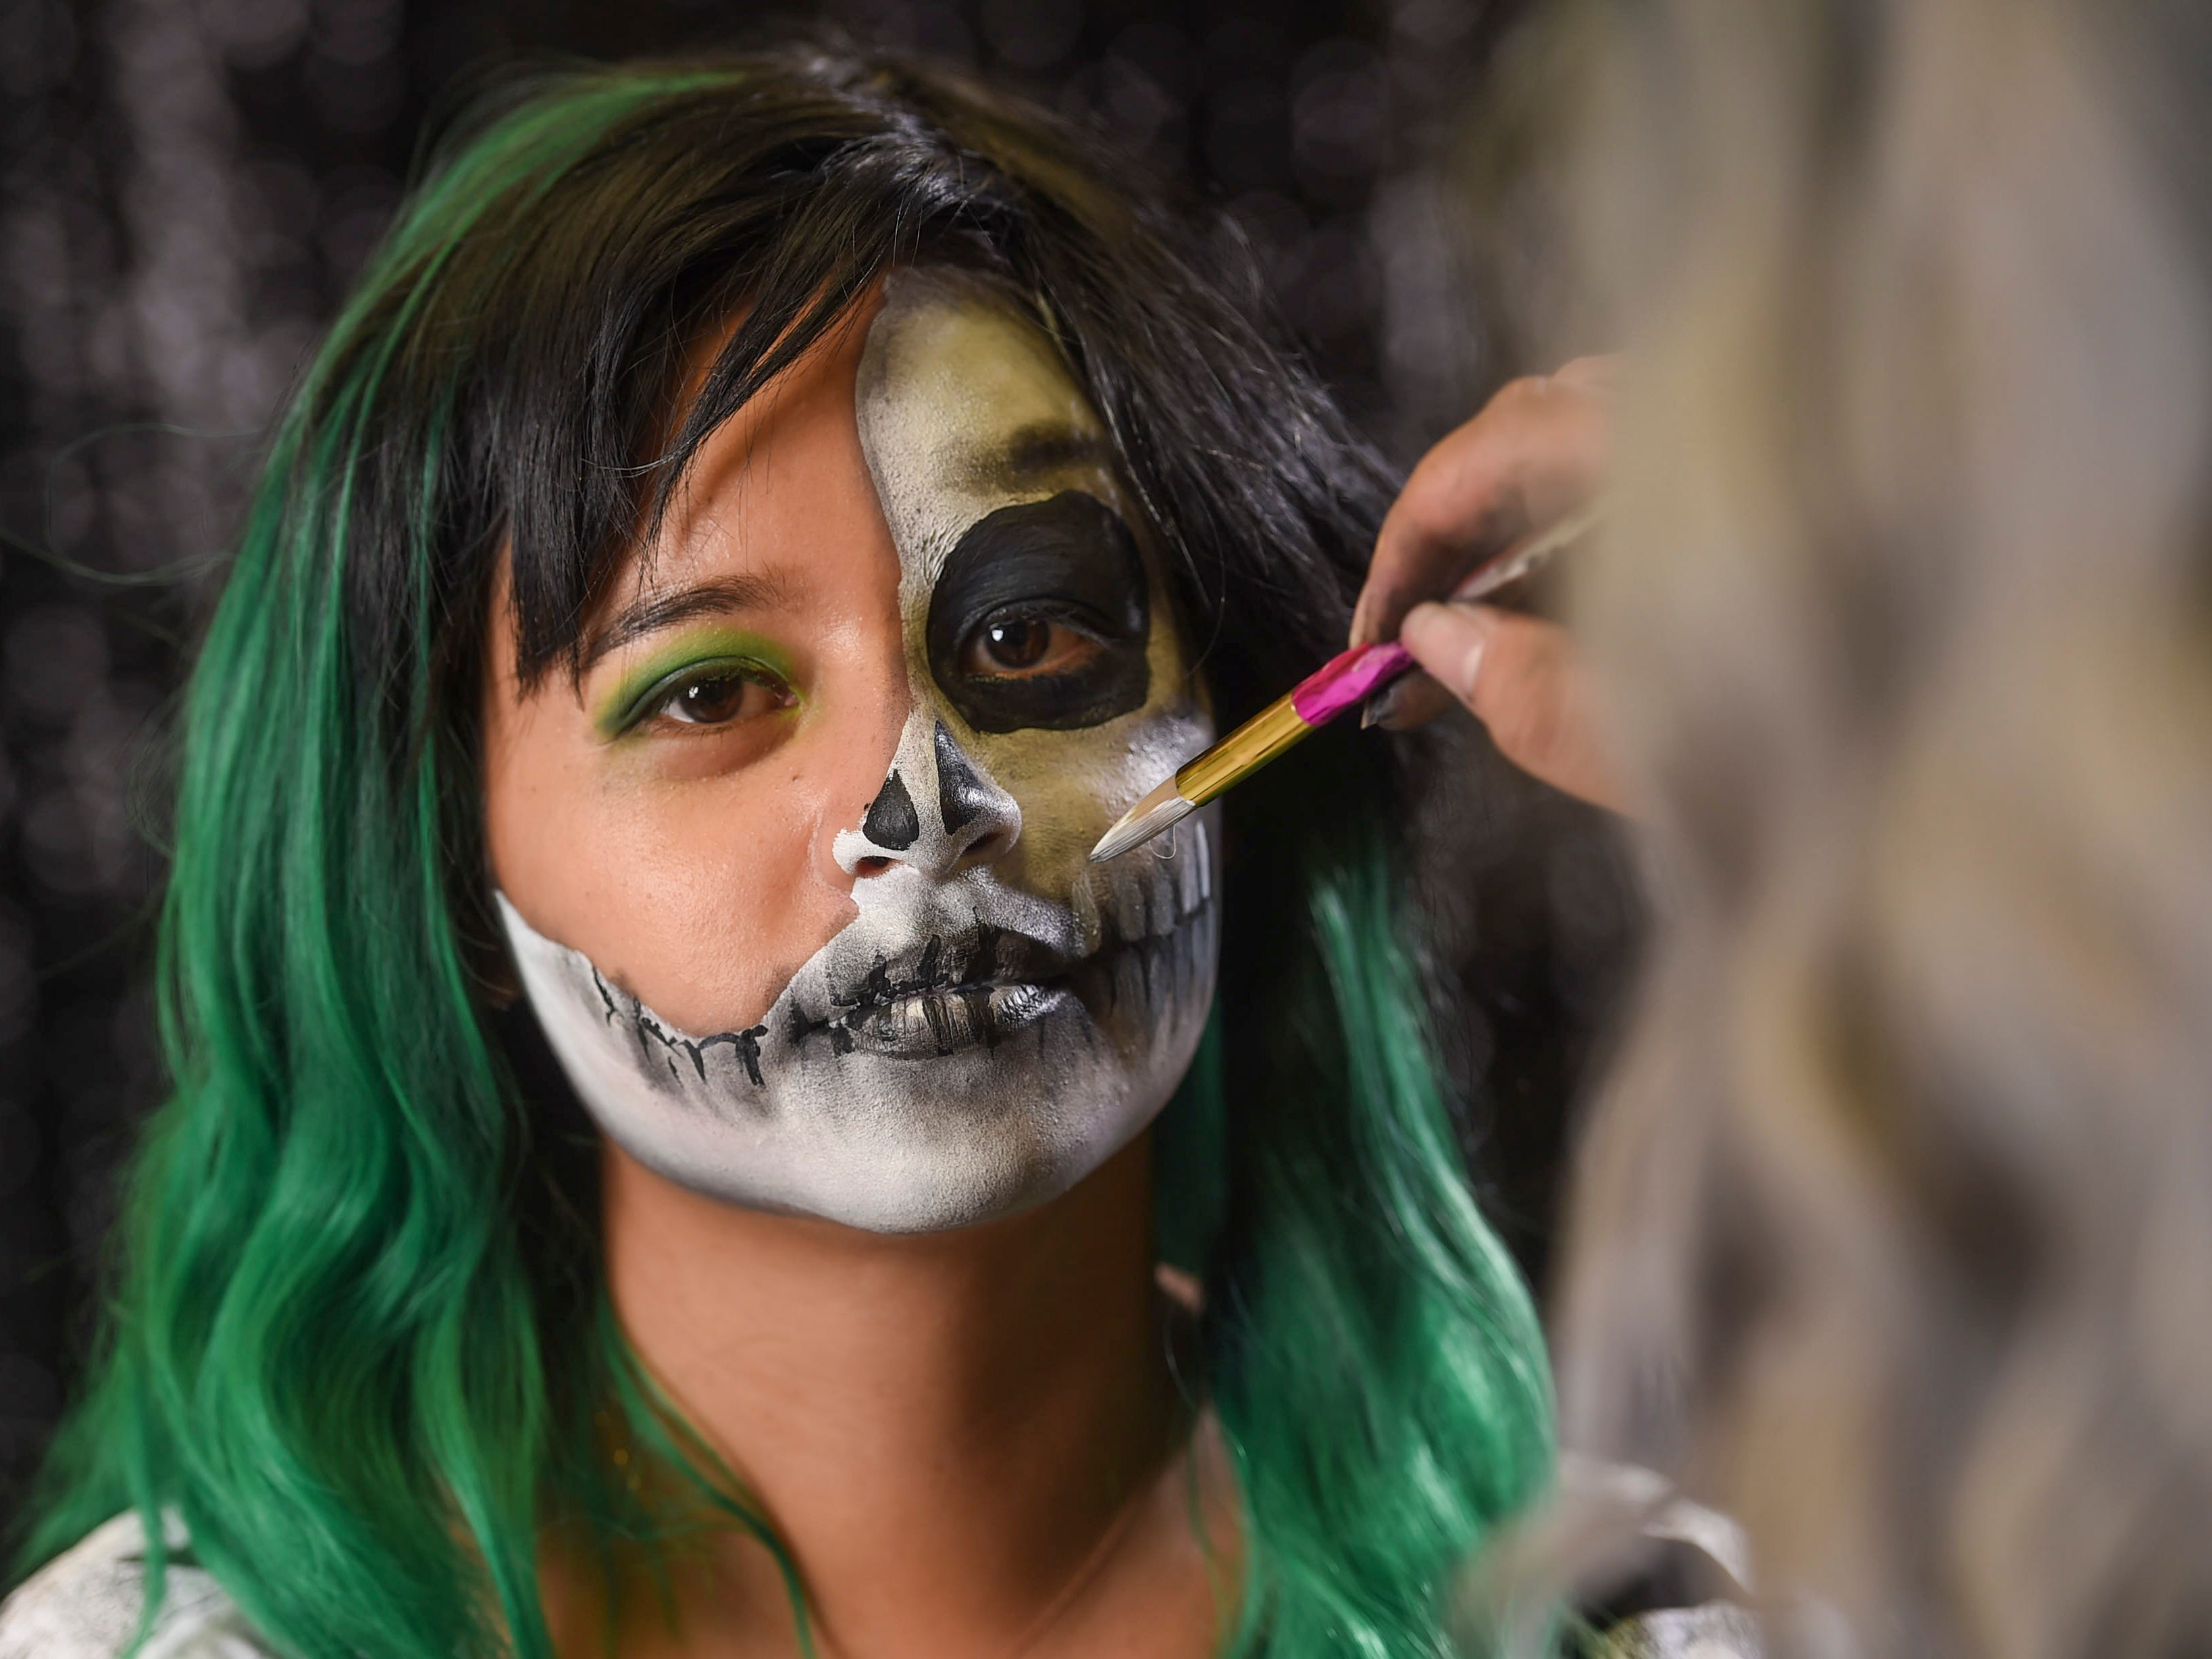 Use gray and black eye shadow to shade around the skull face for detail.